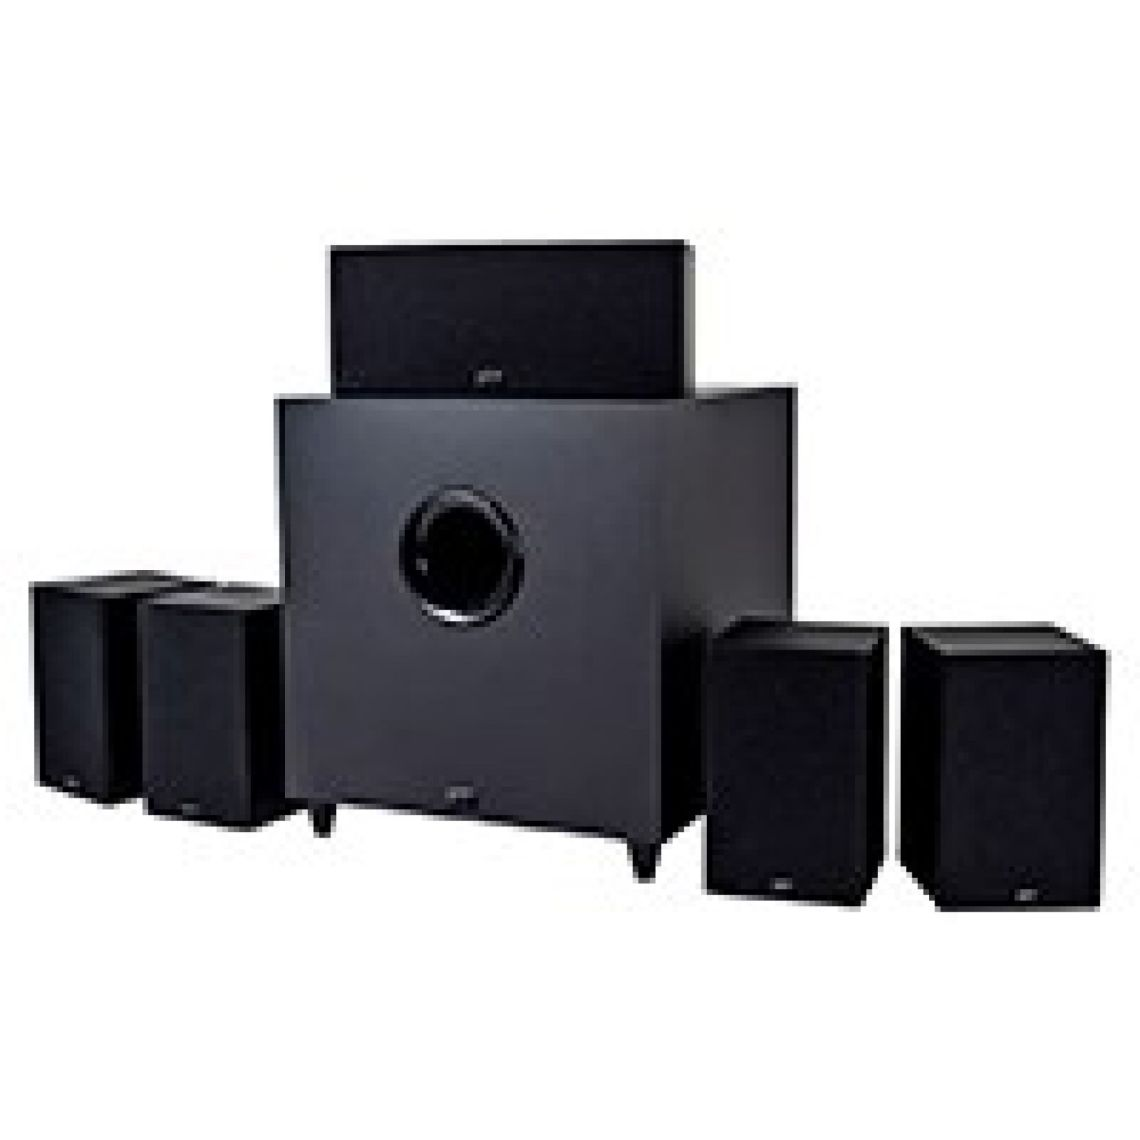 Monoprice Premium 5.1-Ch. Home Theater System with Subwoofer - Monoprice.com